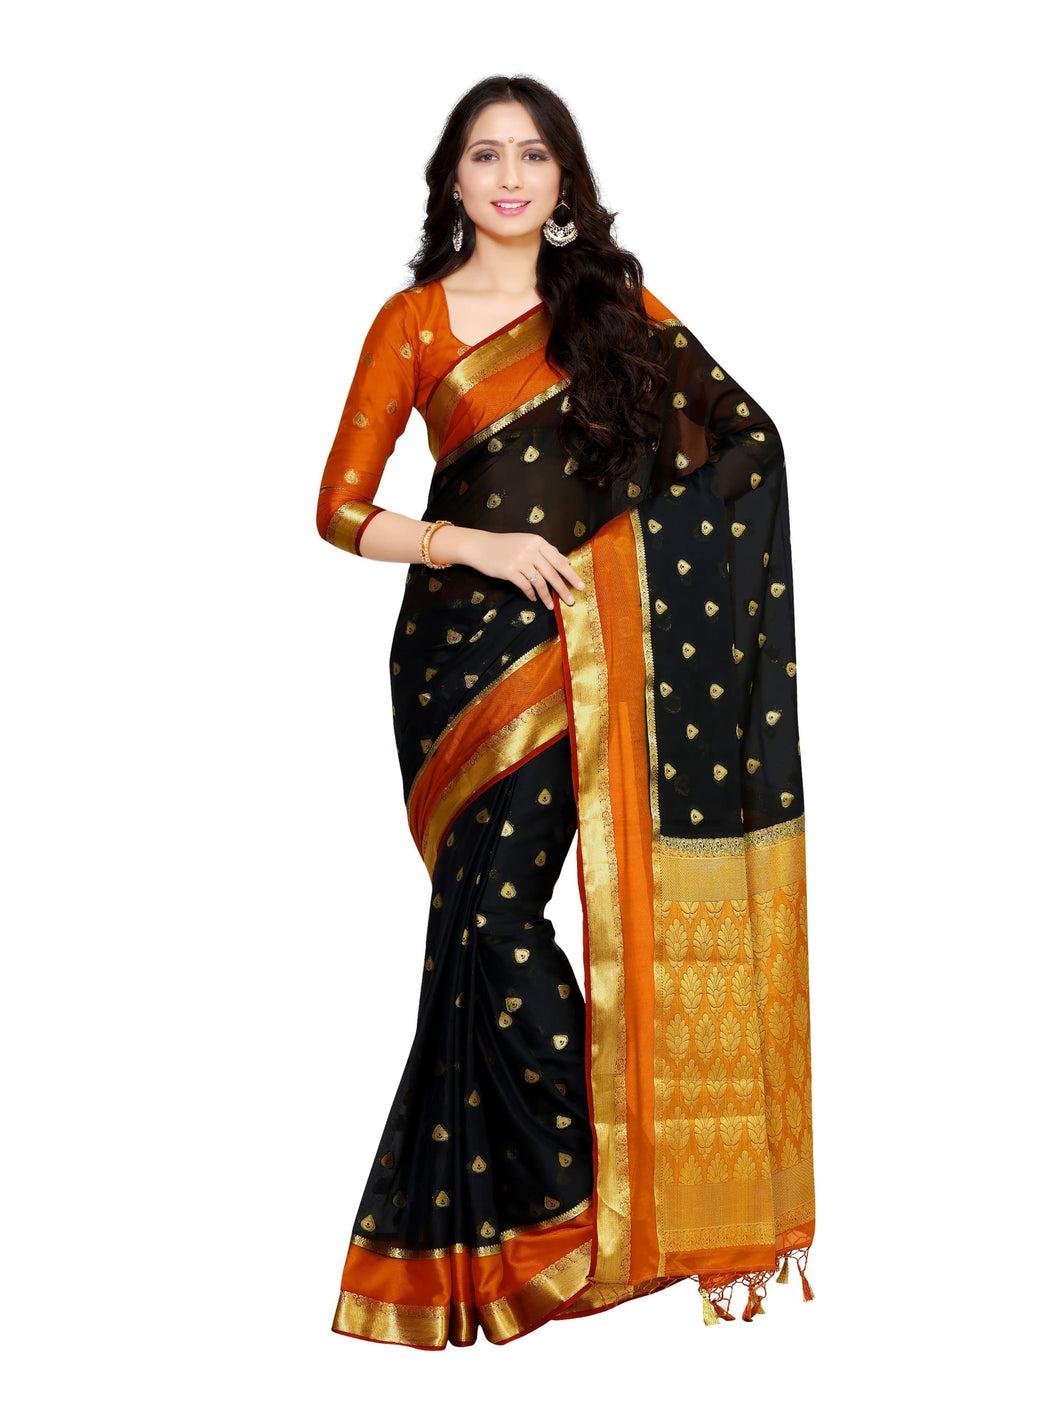 MIMOSA Designer Work Crepe Kanjivaram Style Saree with Blouse in Color Black (4036-2133-3d-blk) - kupindaindia